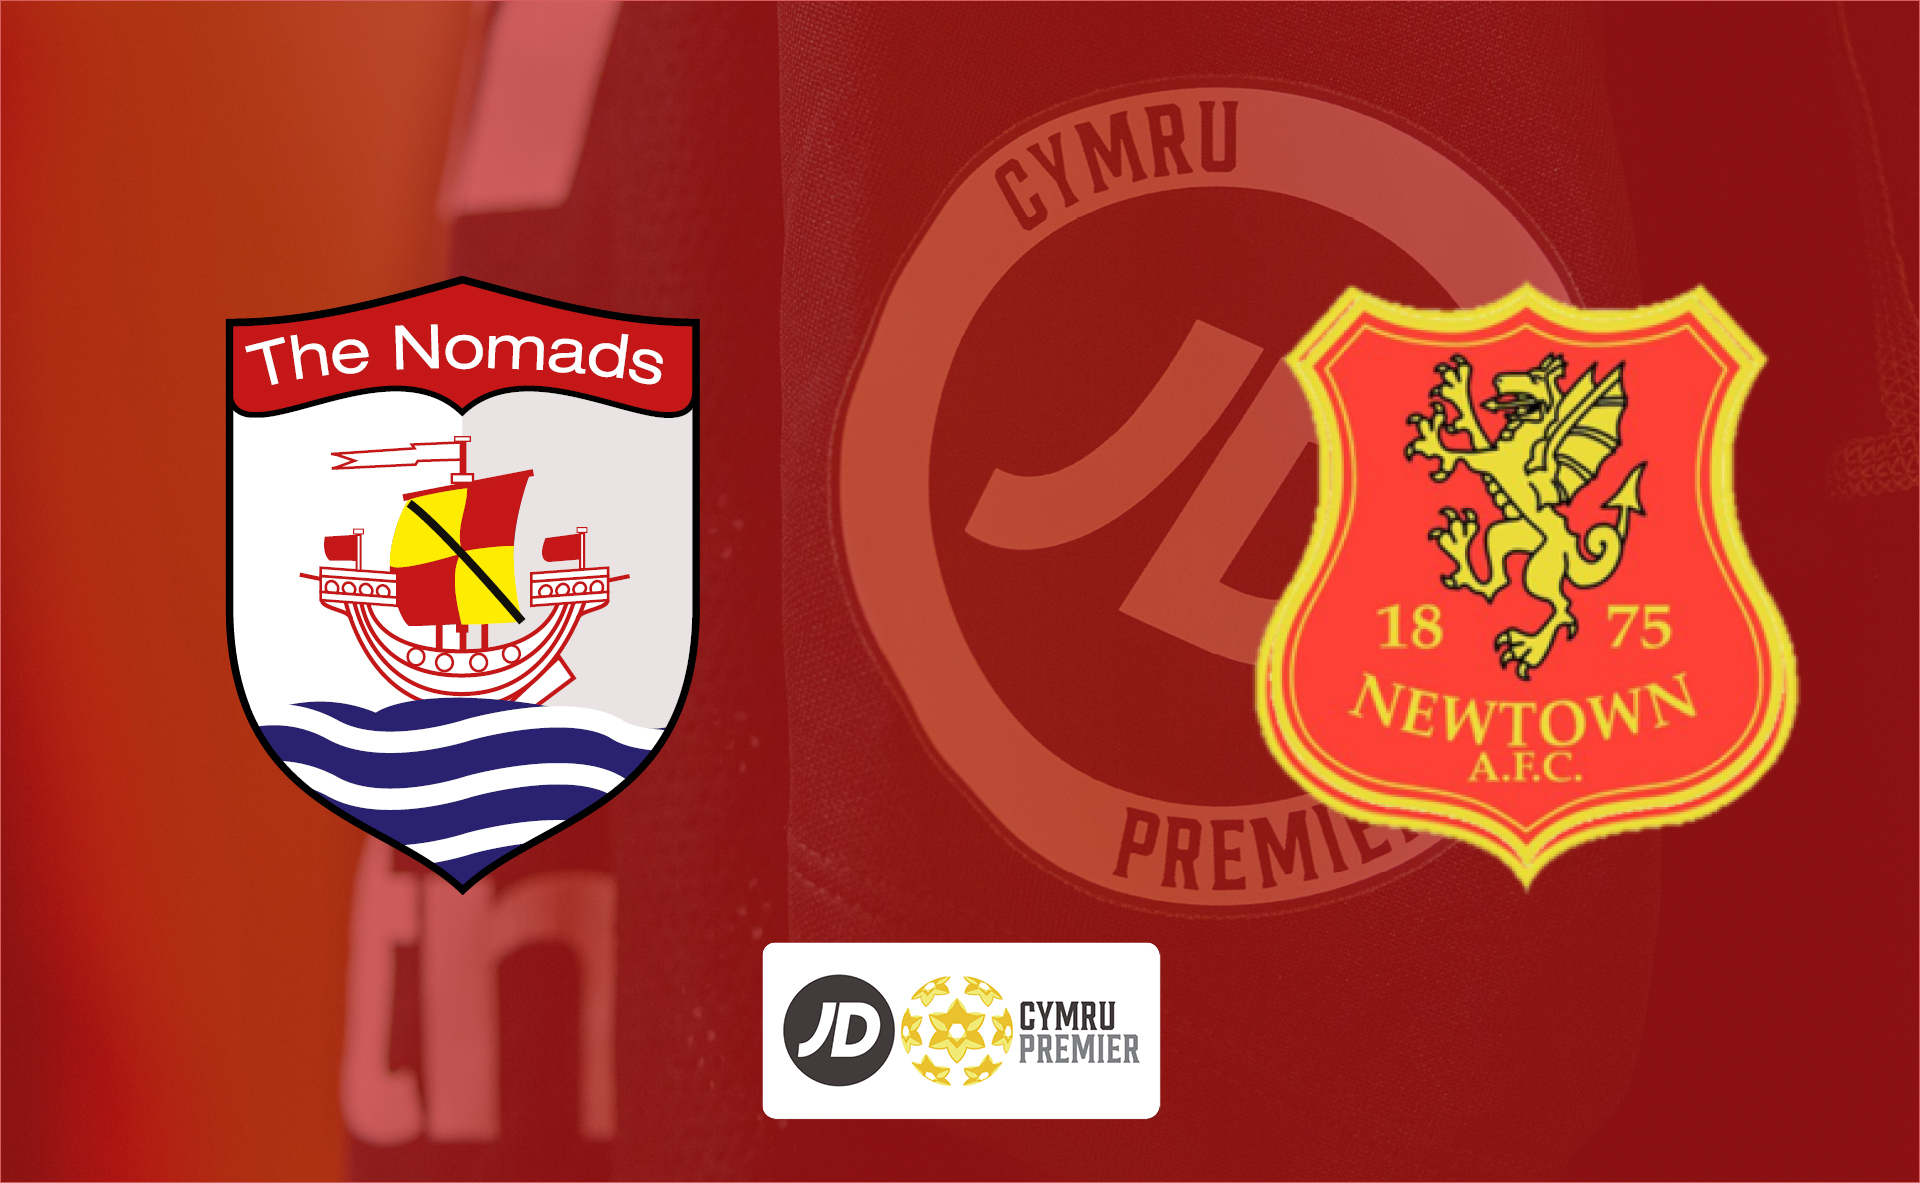 Connah's Quay Nomads vs Newtown will now take place on Friday 15th November